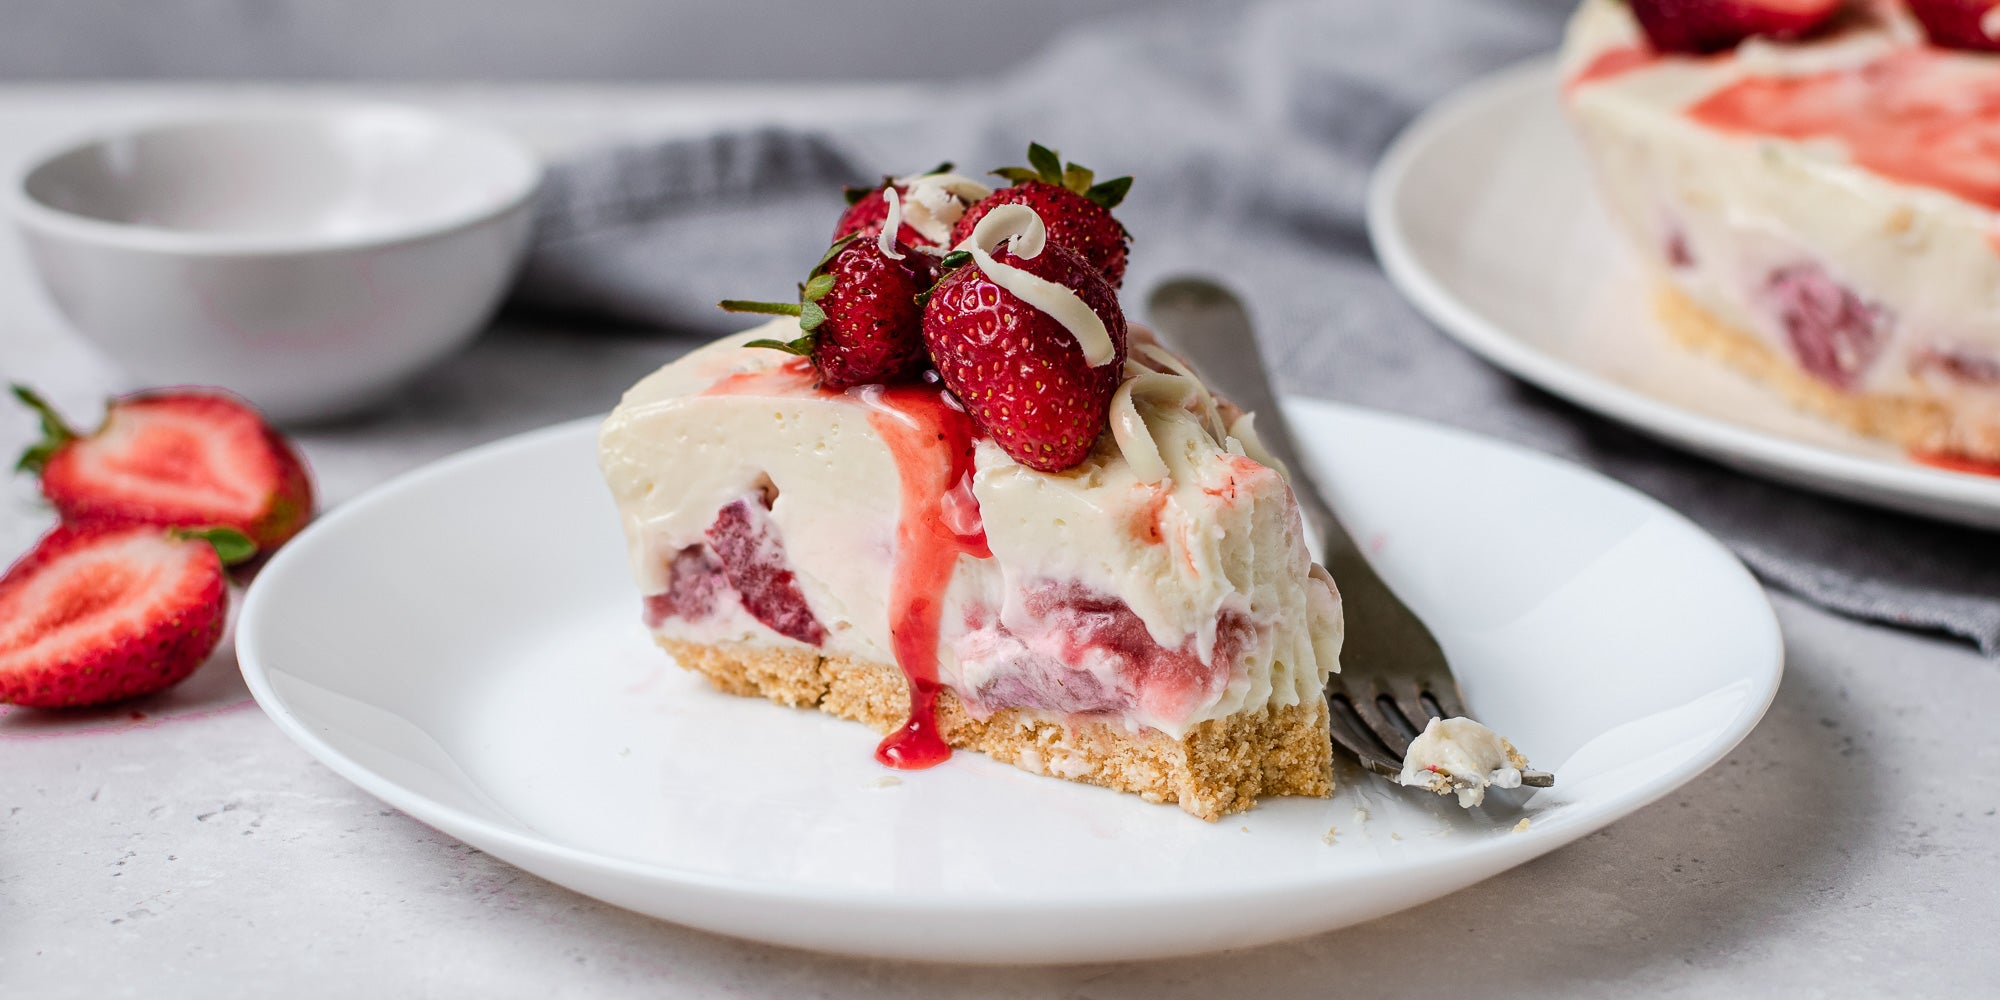 White Chocolate & Strawberry Cheesecake slice, with strawberry sauce running down the cheesecake. Next to a fork on a plate to serve.